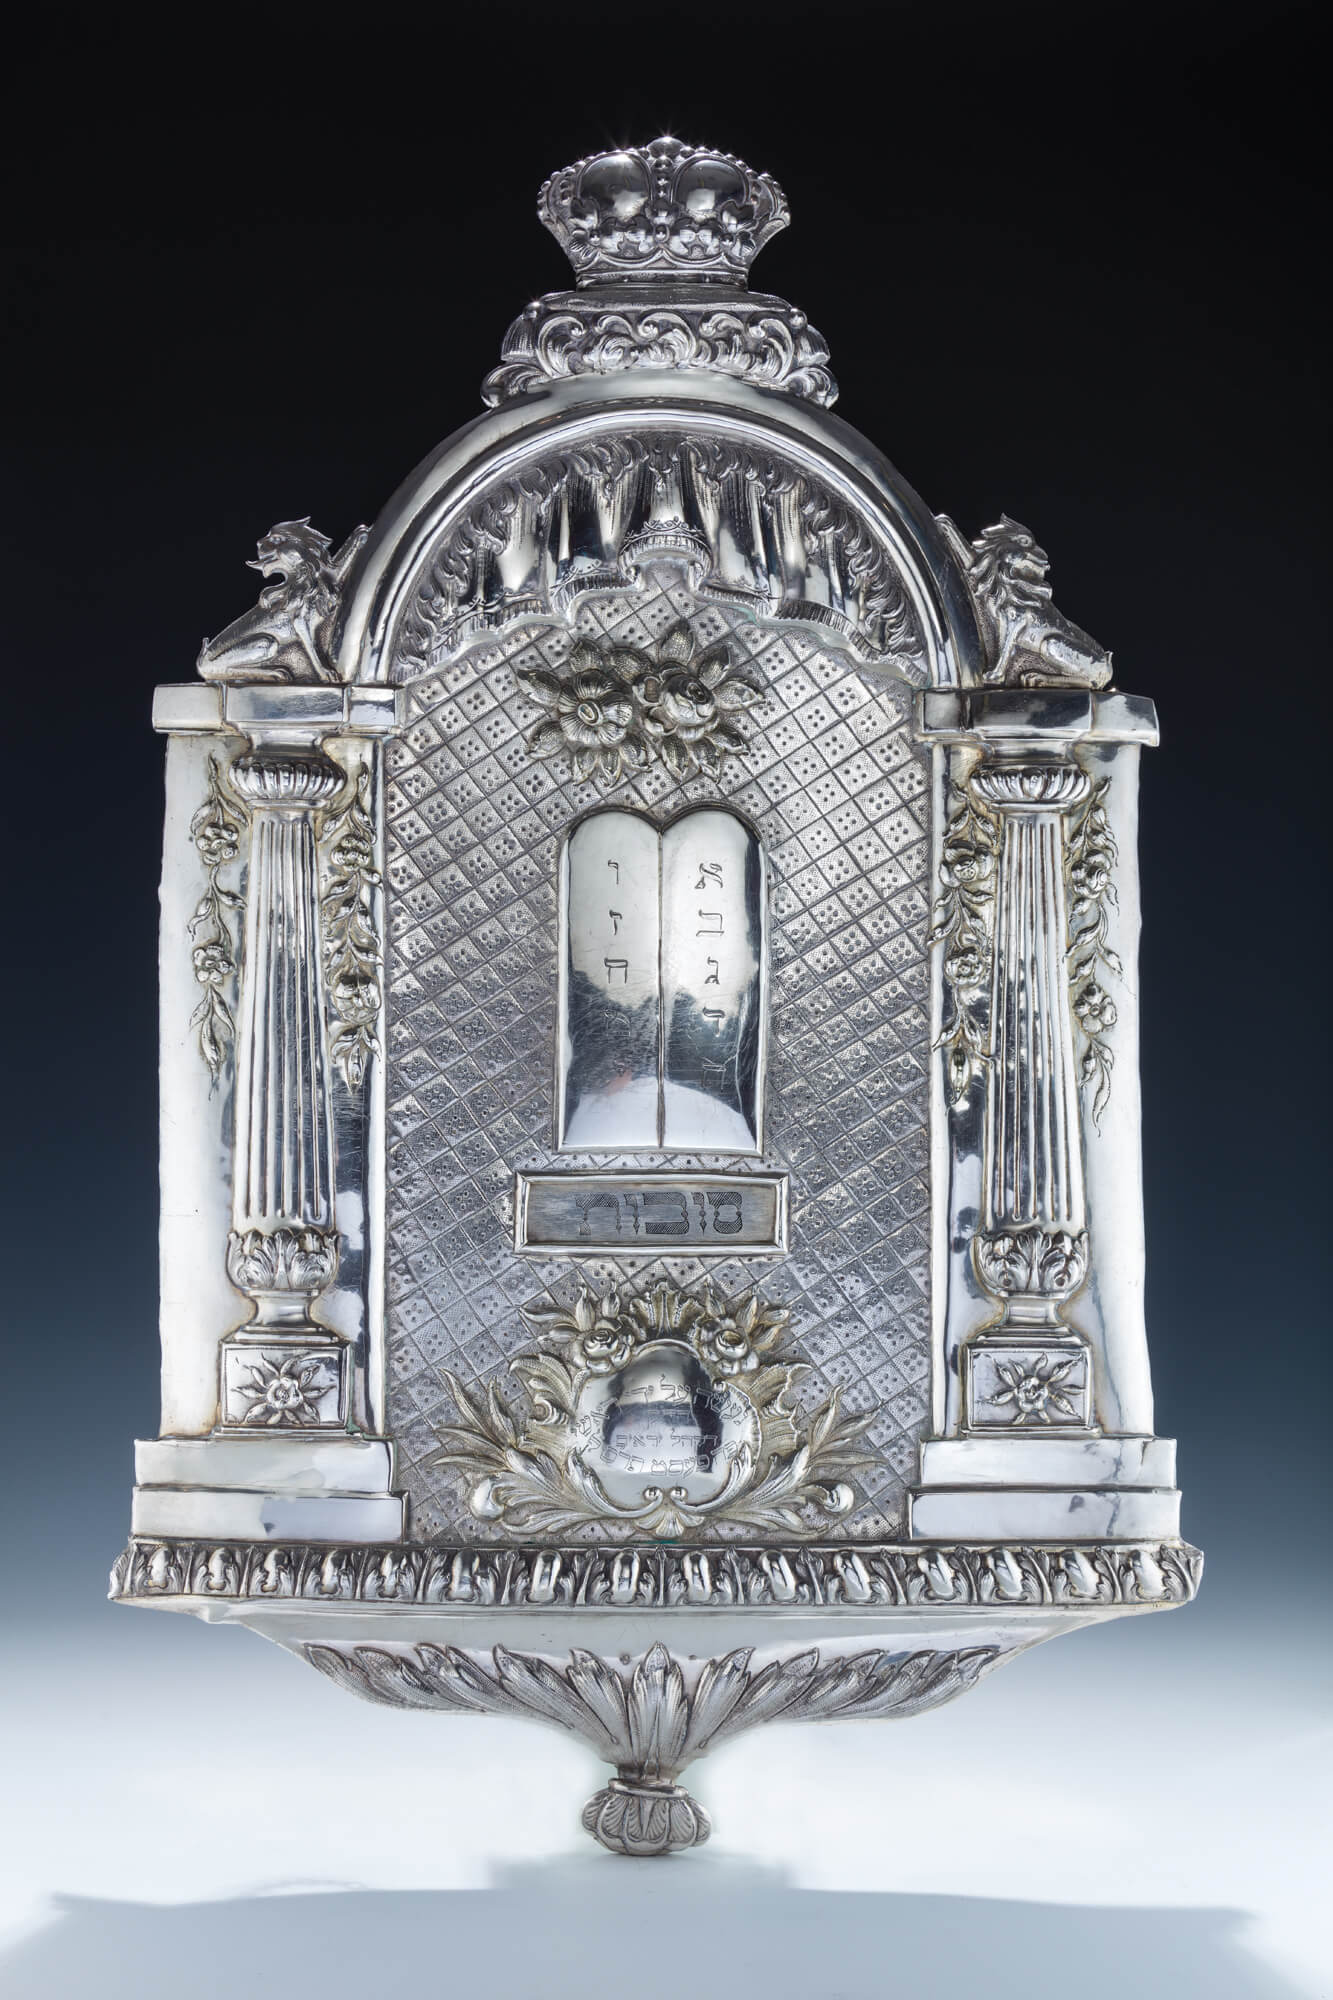 108. A Monumental Silver Torah Shield of Chevrah Kadischa Interest